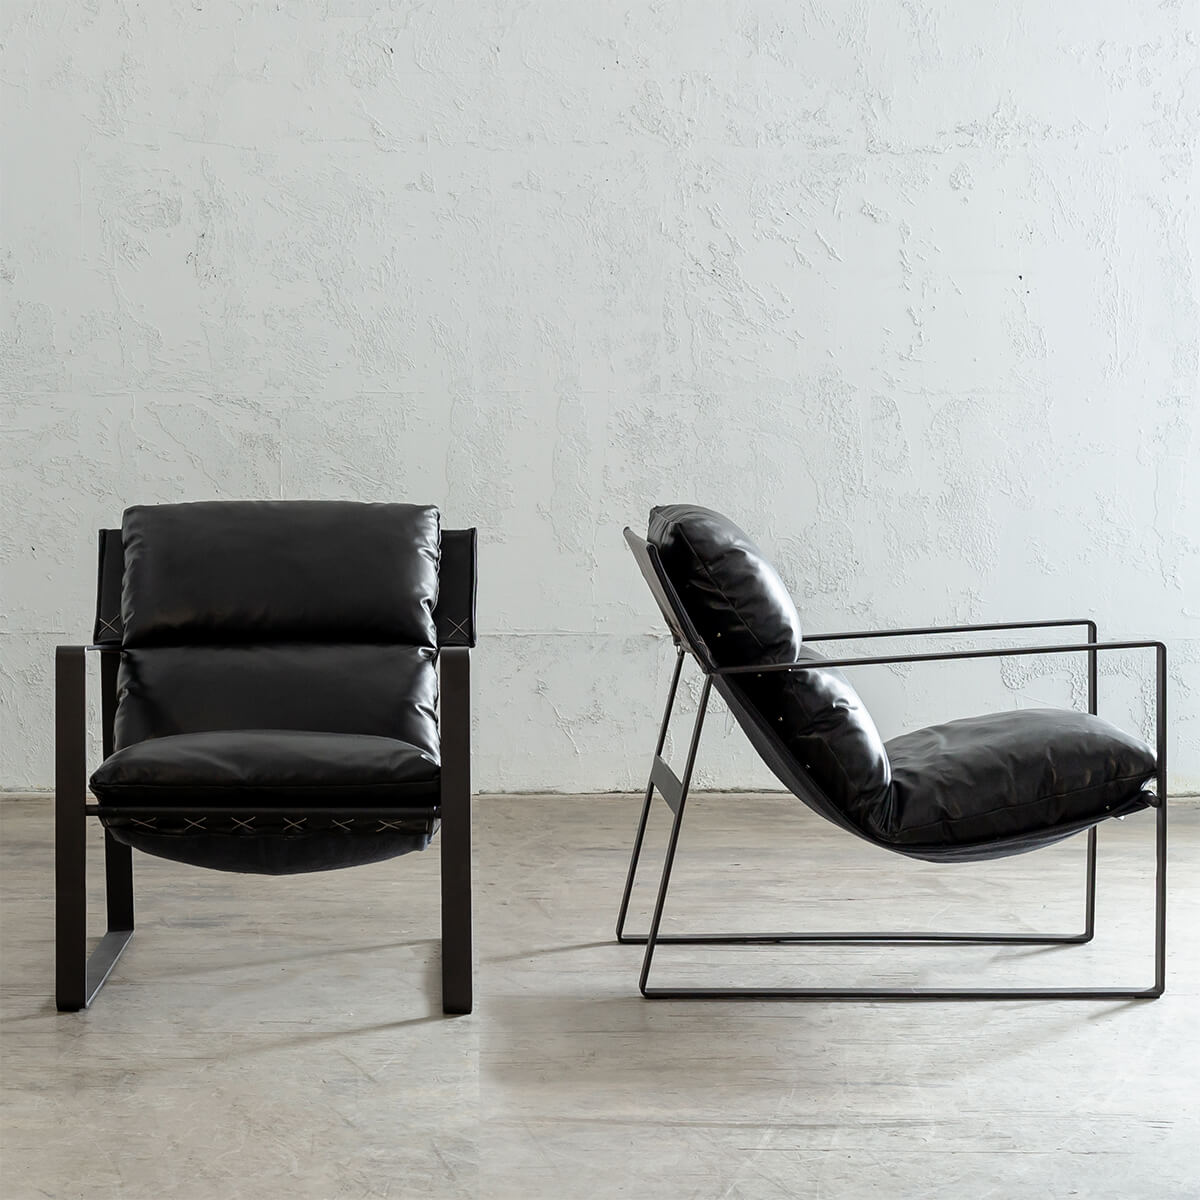 LAURENT LEATHER ARM CHAIR PACKAGE  |  NOIR BLACK LEATHER  |   2 X LAURENT CHAIRS